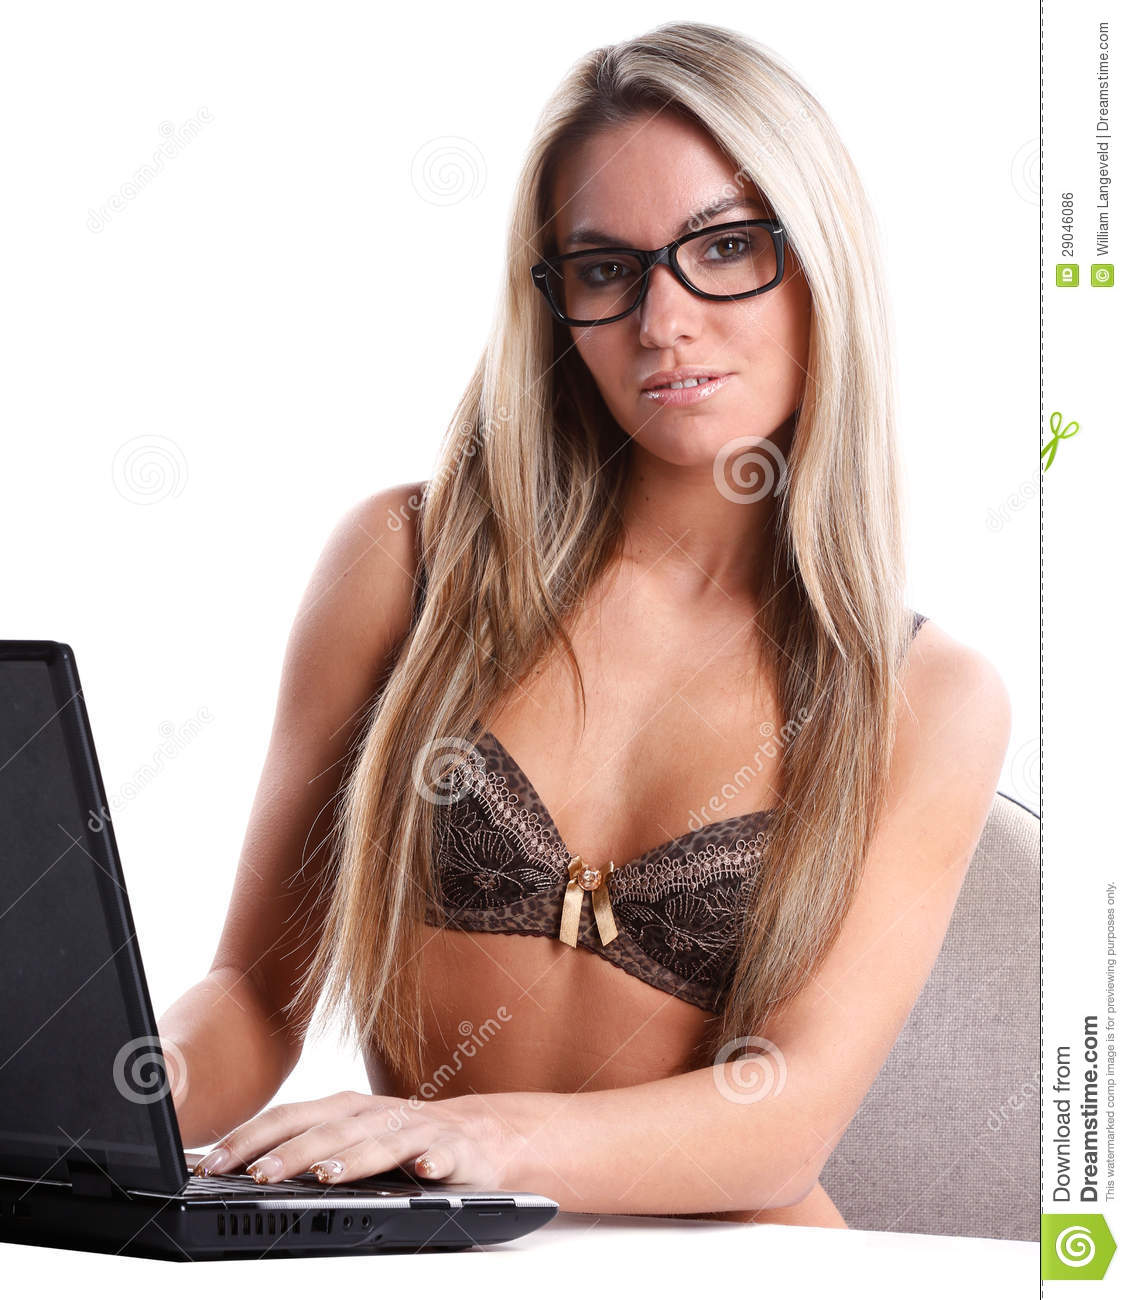 Beautiful Woman In Lingerie Works As Secretary With Laptop